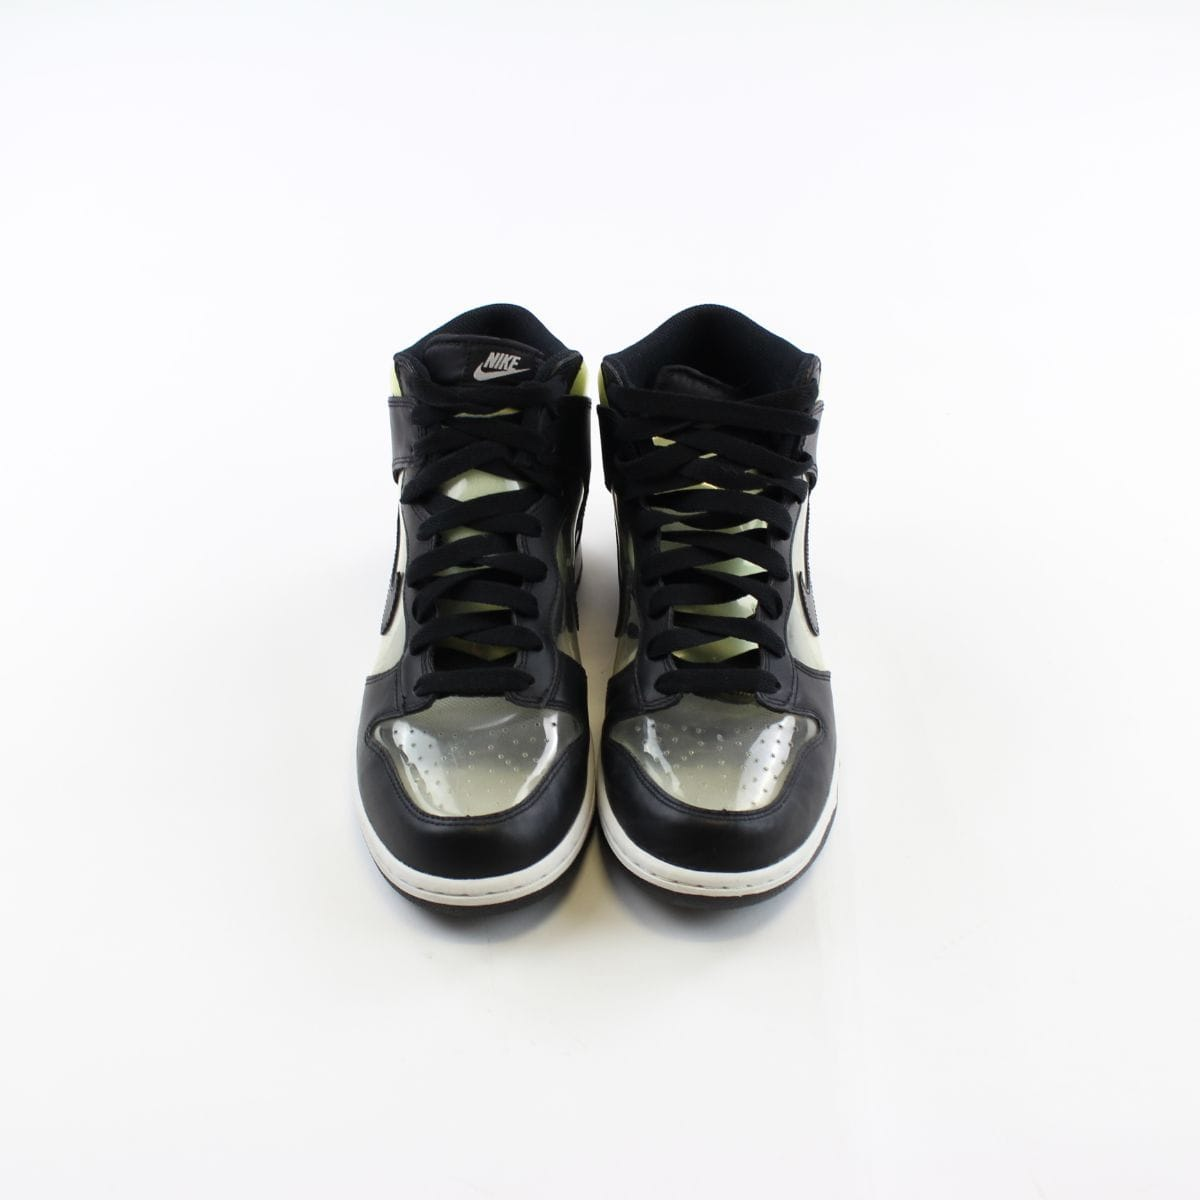 Nike SB Dunk High x CDG